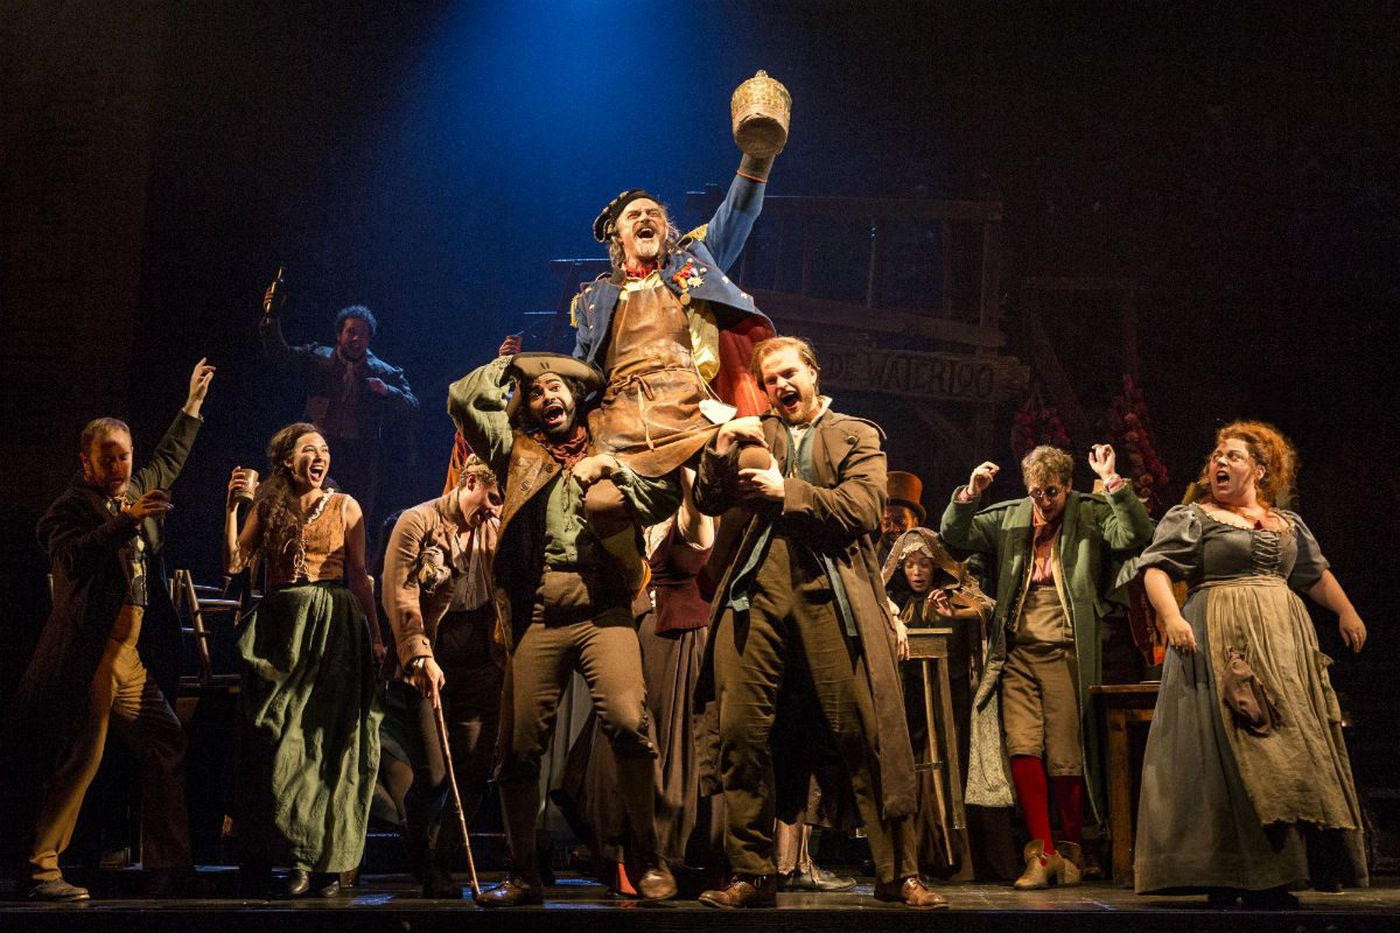 'Les Mis' at the Academy of Music: Magnificent, enthralling, a knockout